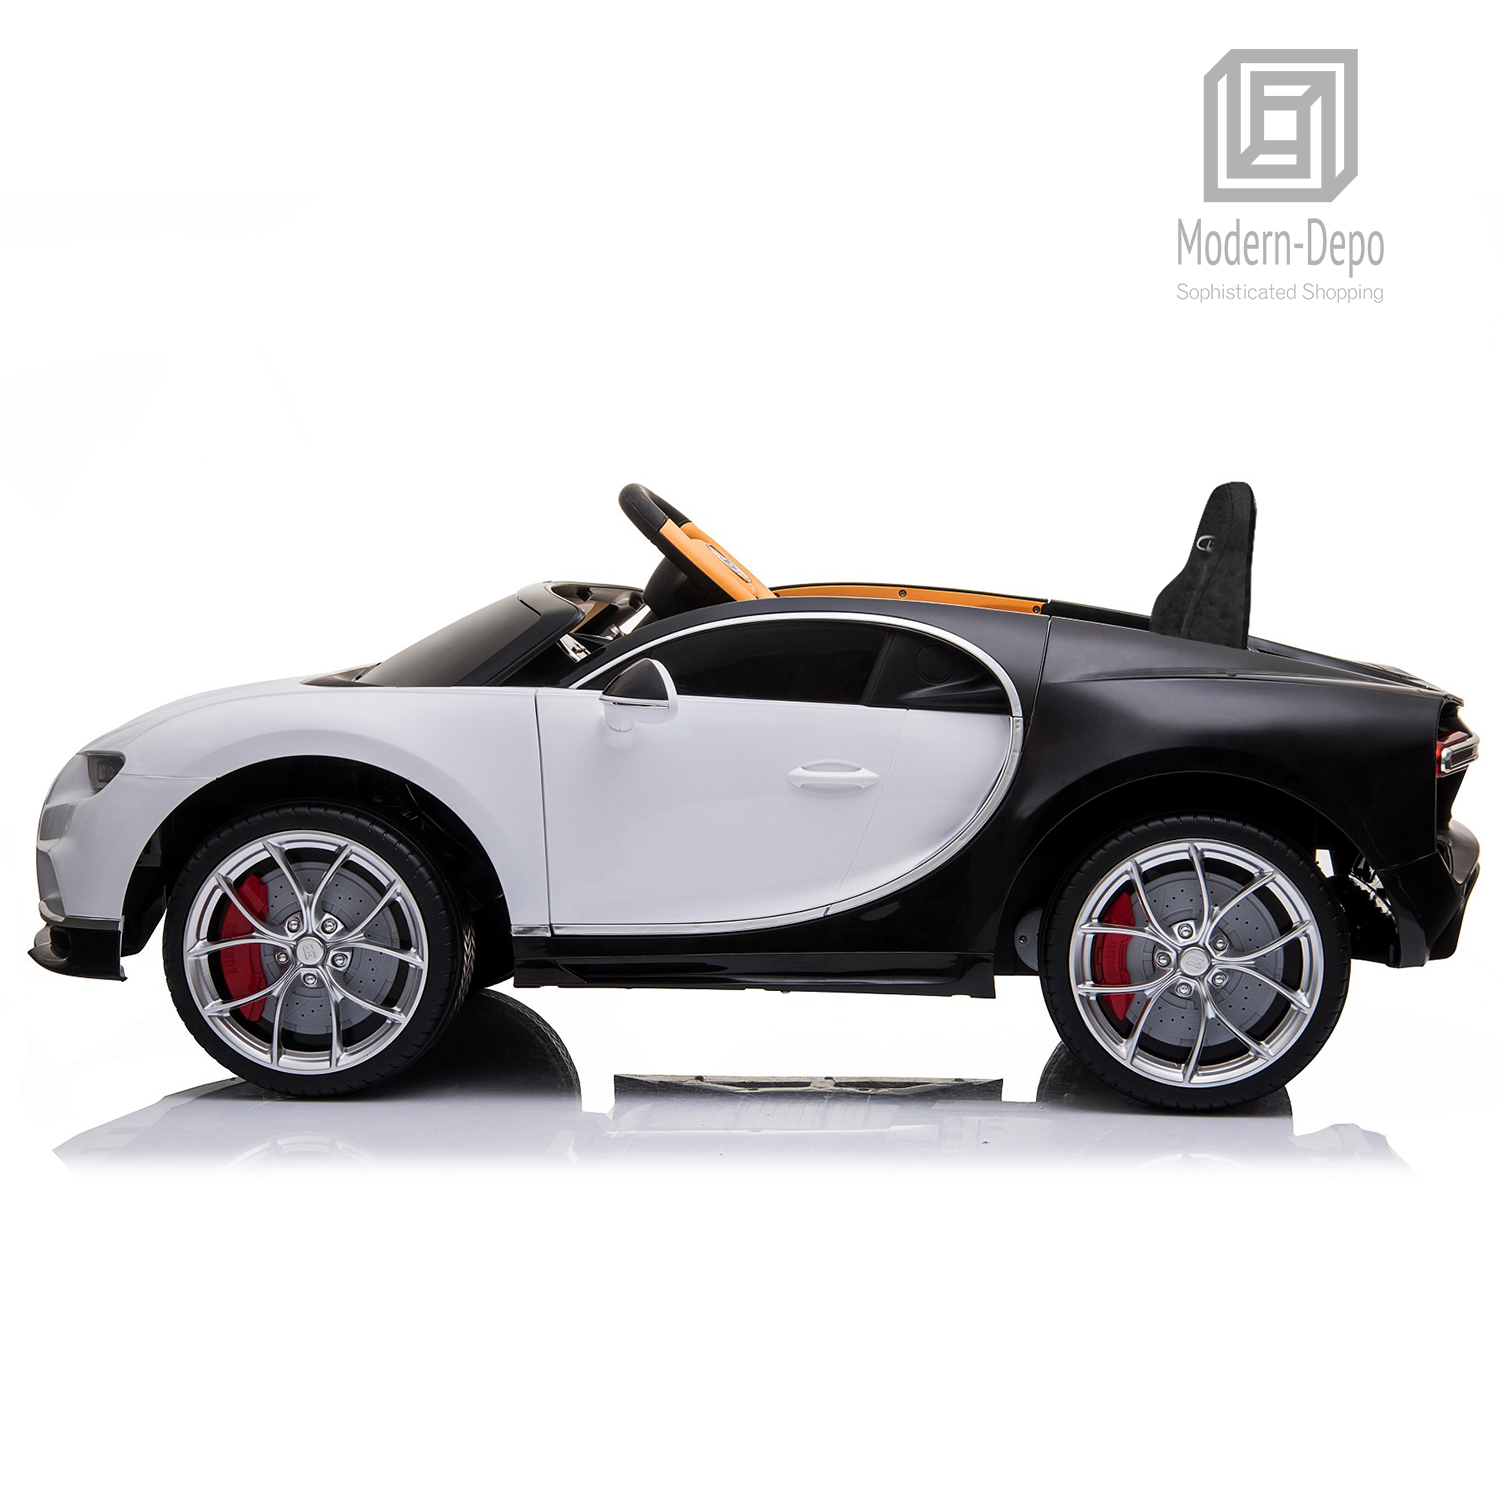 Bugatti-Chiron-12V-Kids-Ride-On-Car-with-Remote-Control-High-Speed-Motor miniature 38